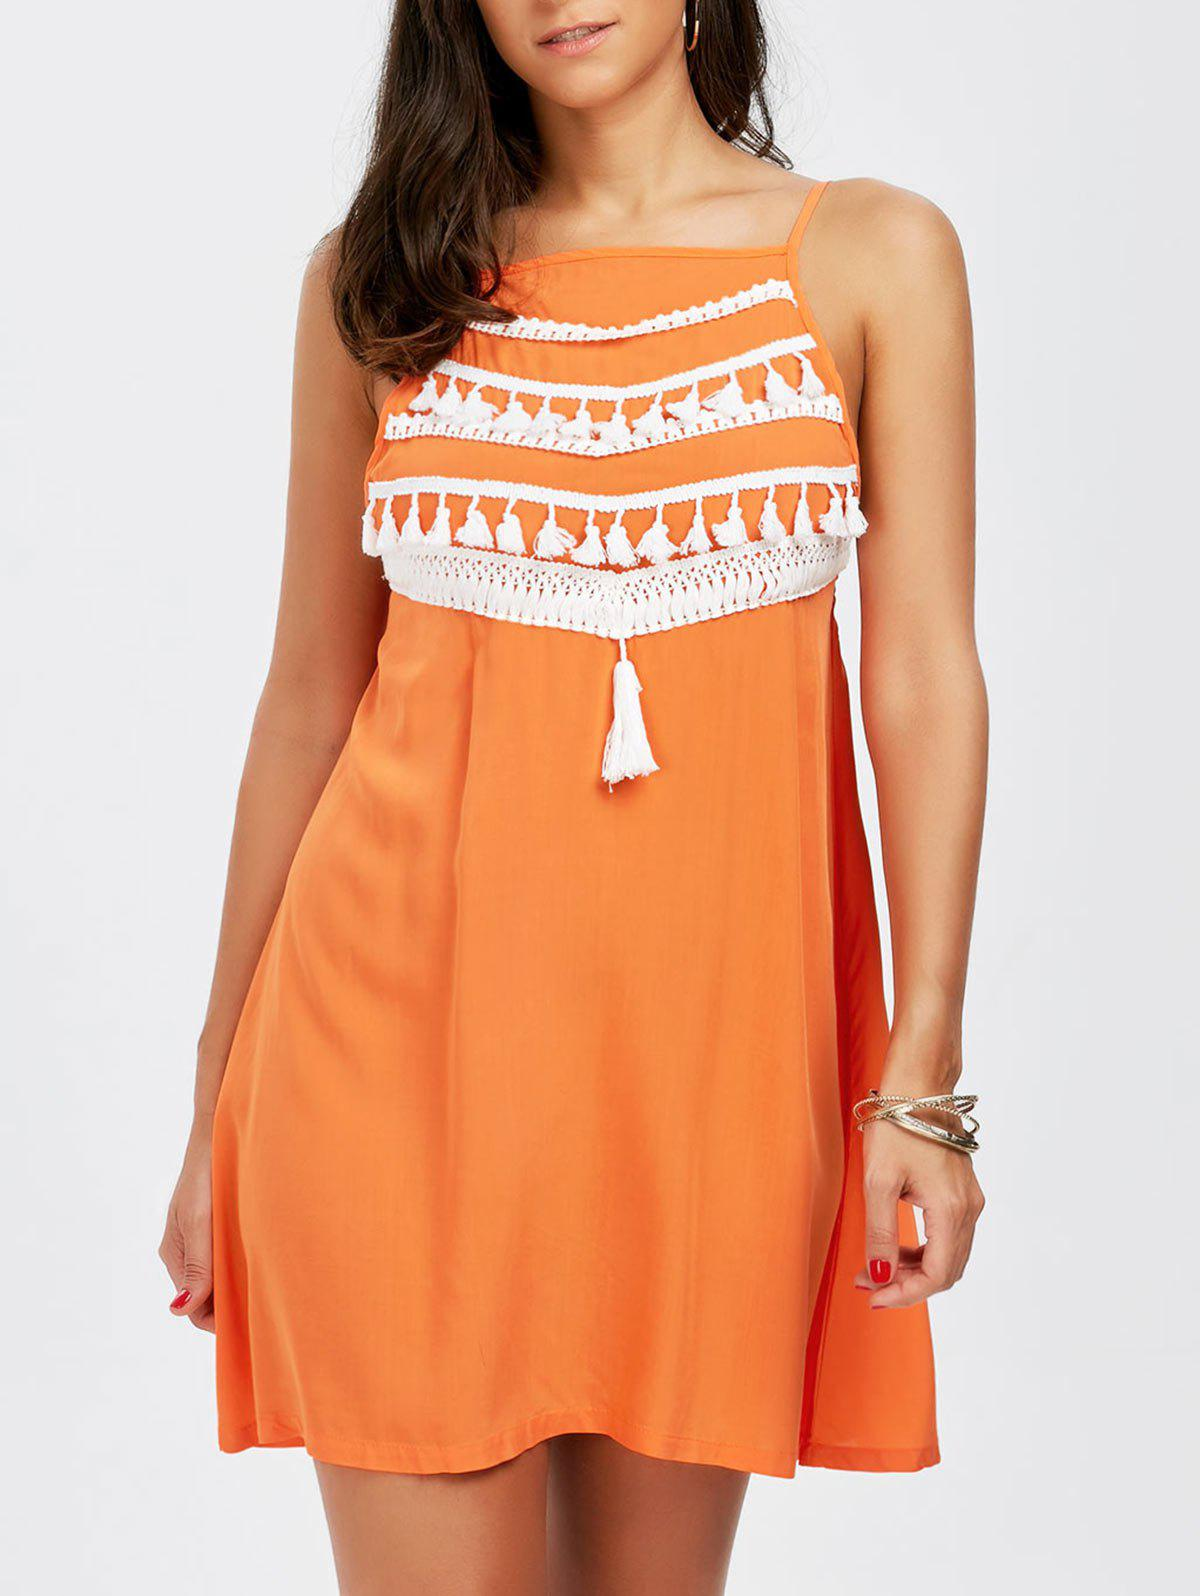 Spaghetti Strap Tassel Dress - ORANGE XL